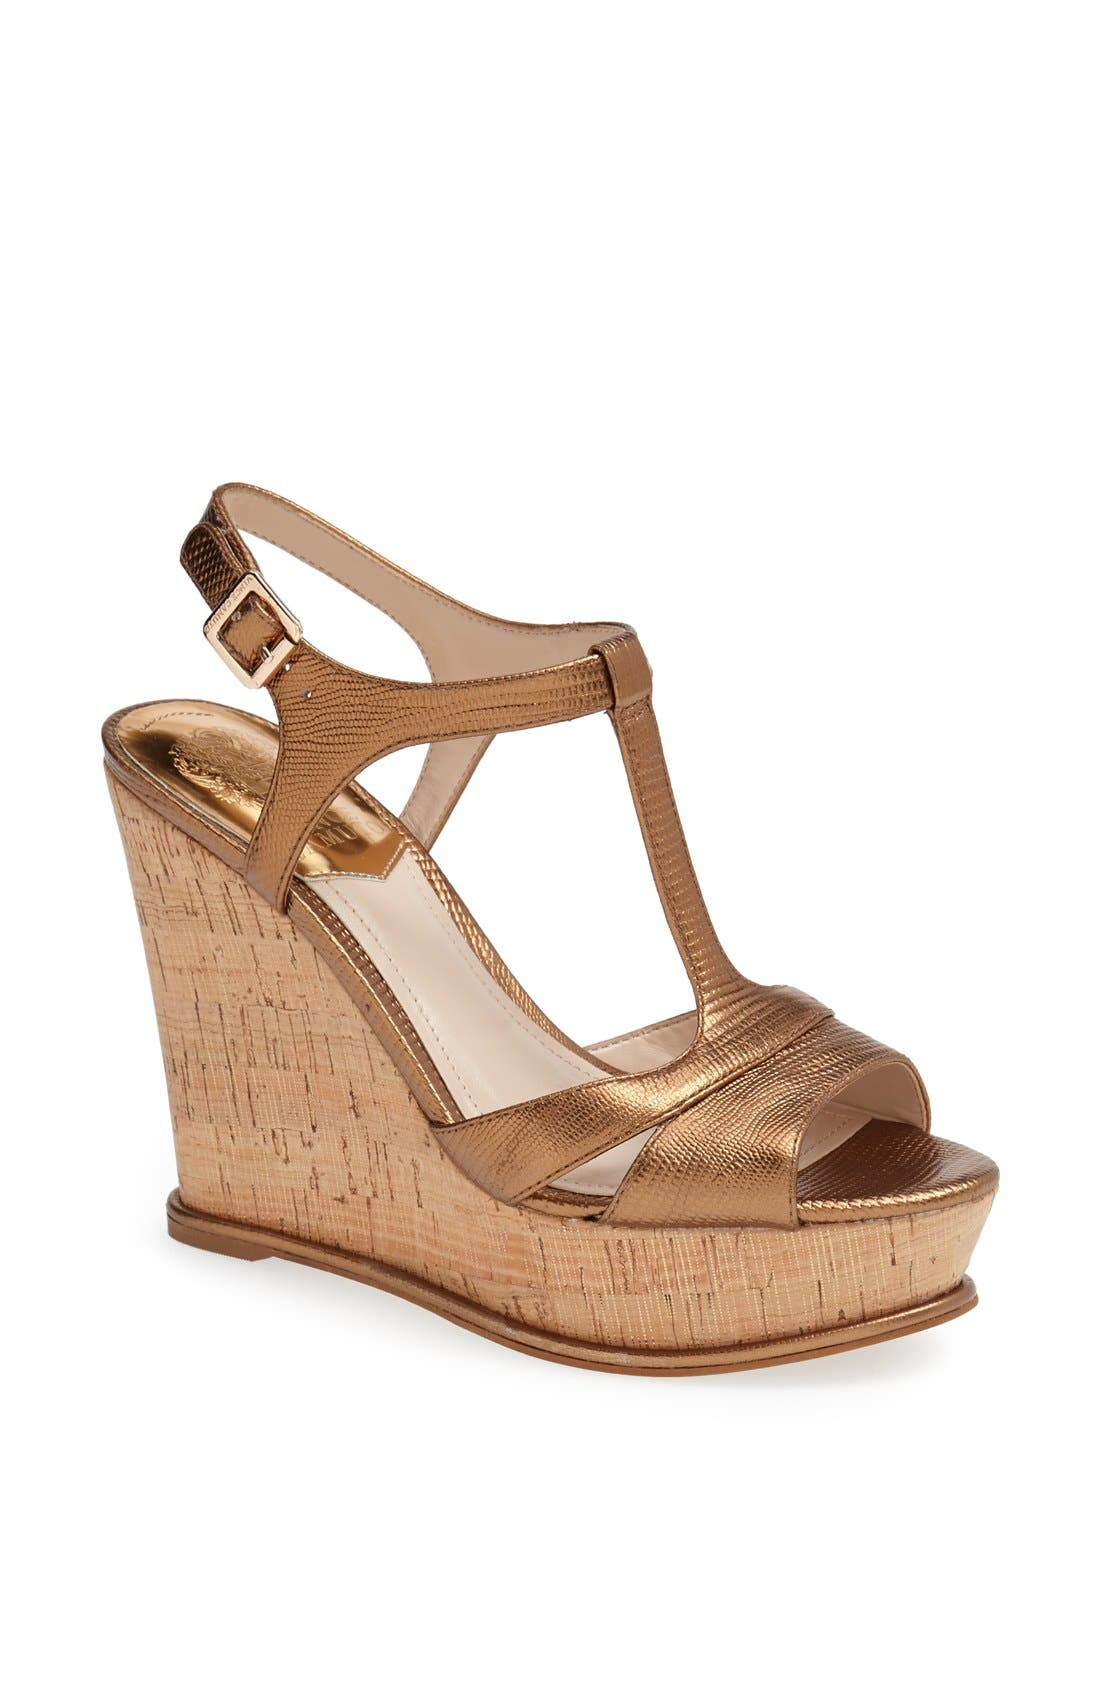 Alternate Image 1 Selected - Vince Camuto 'Inslo' Wedge Sandal